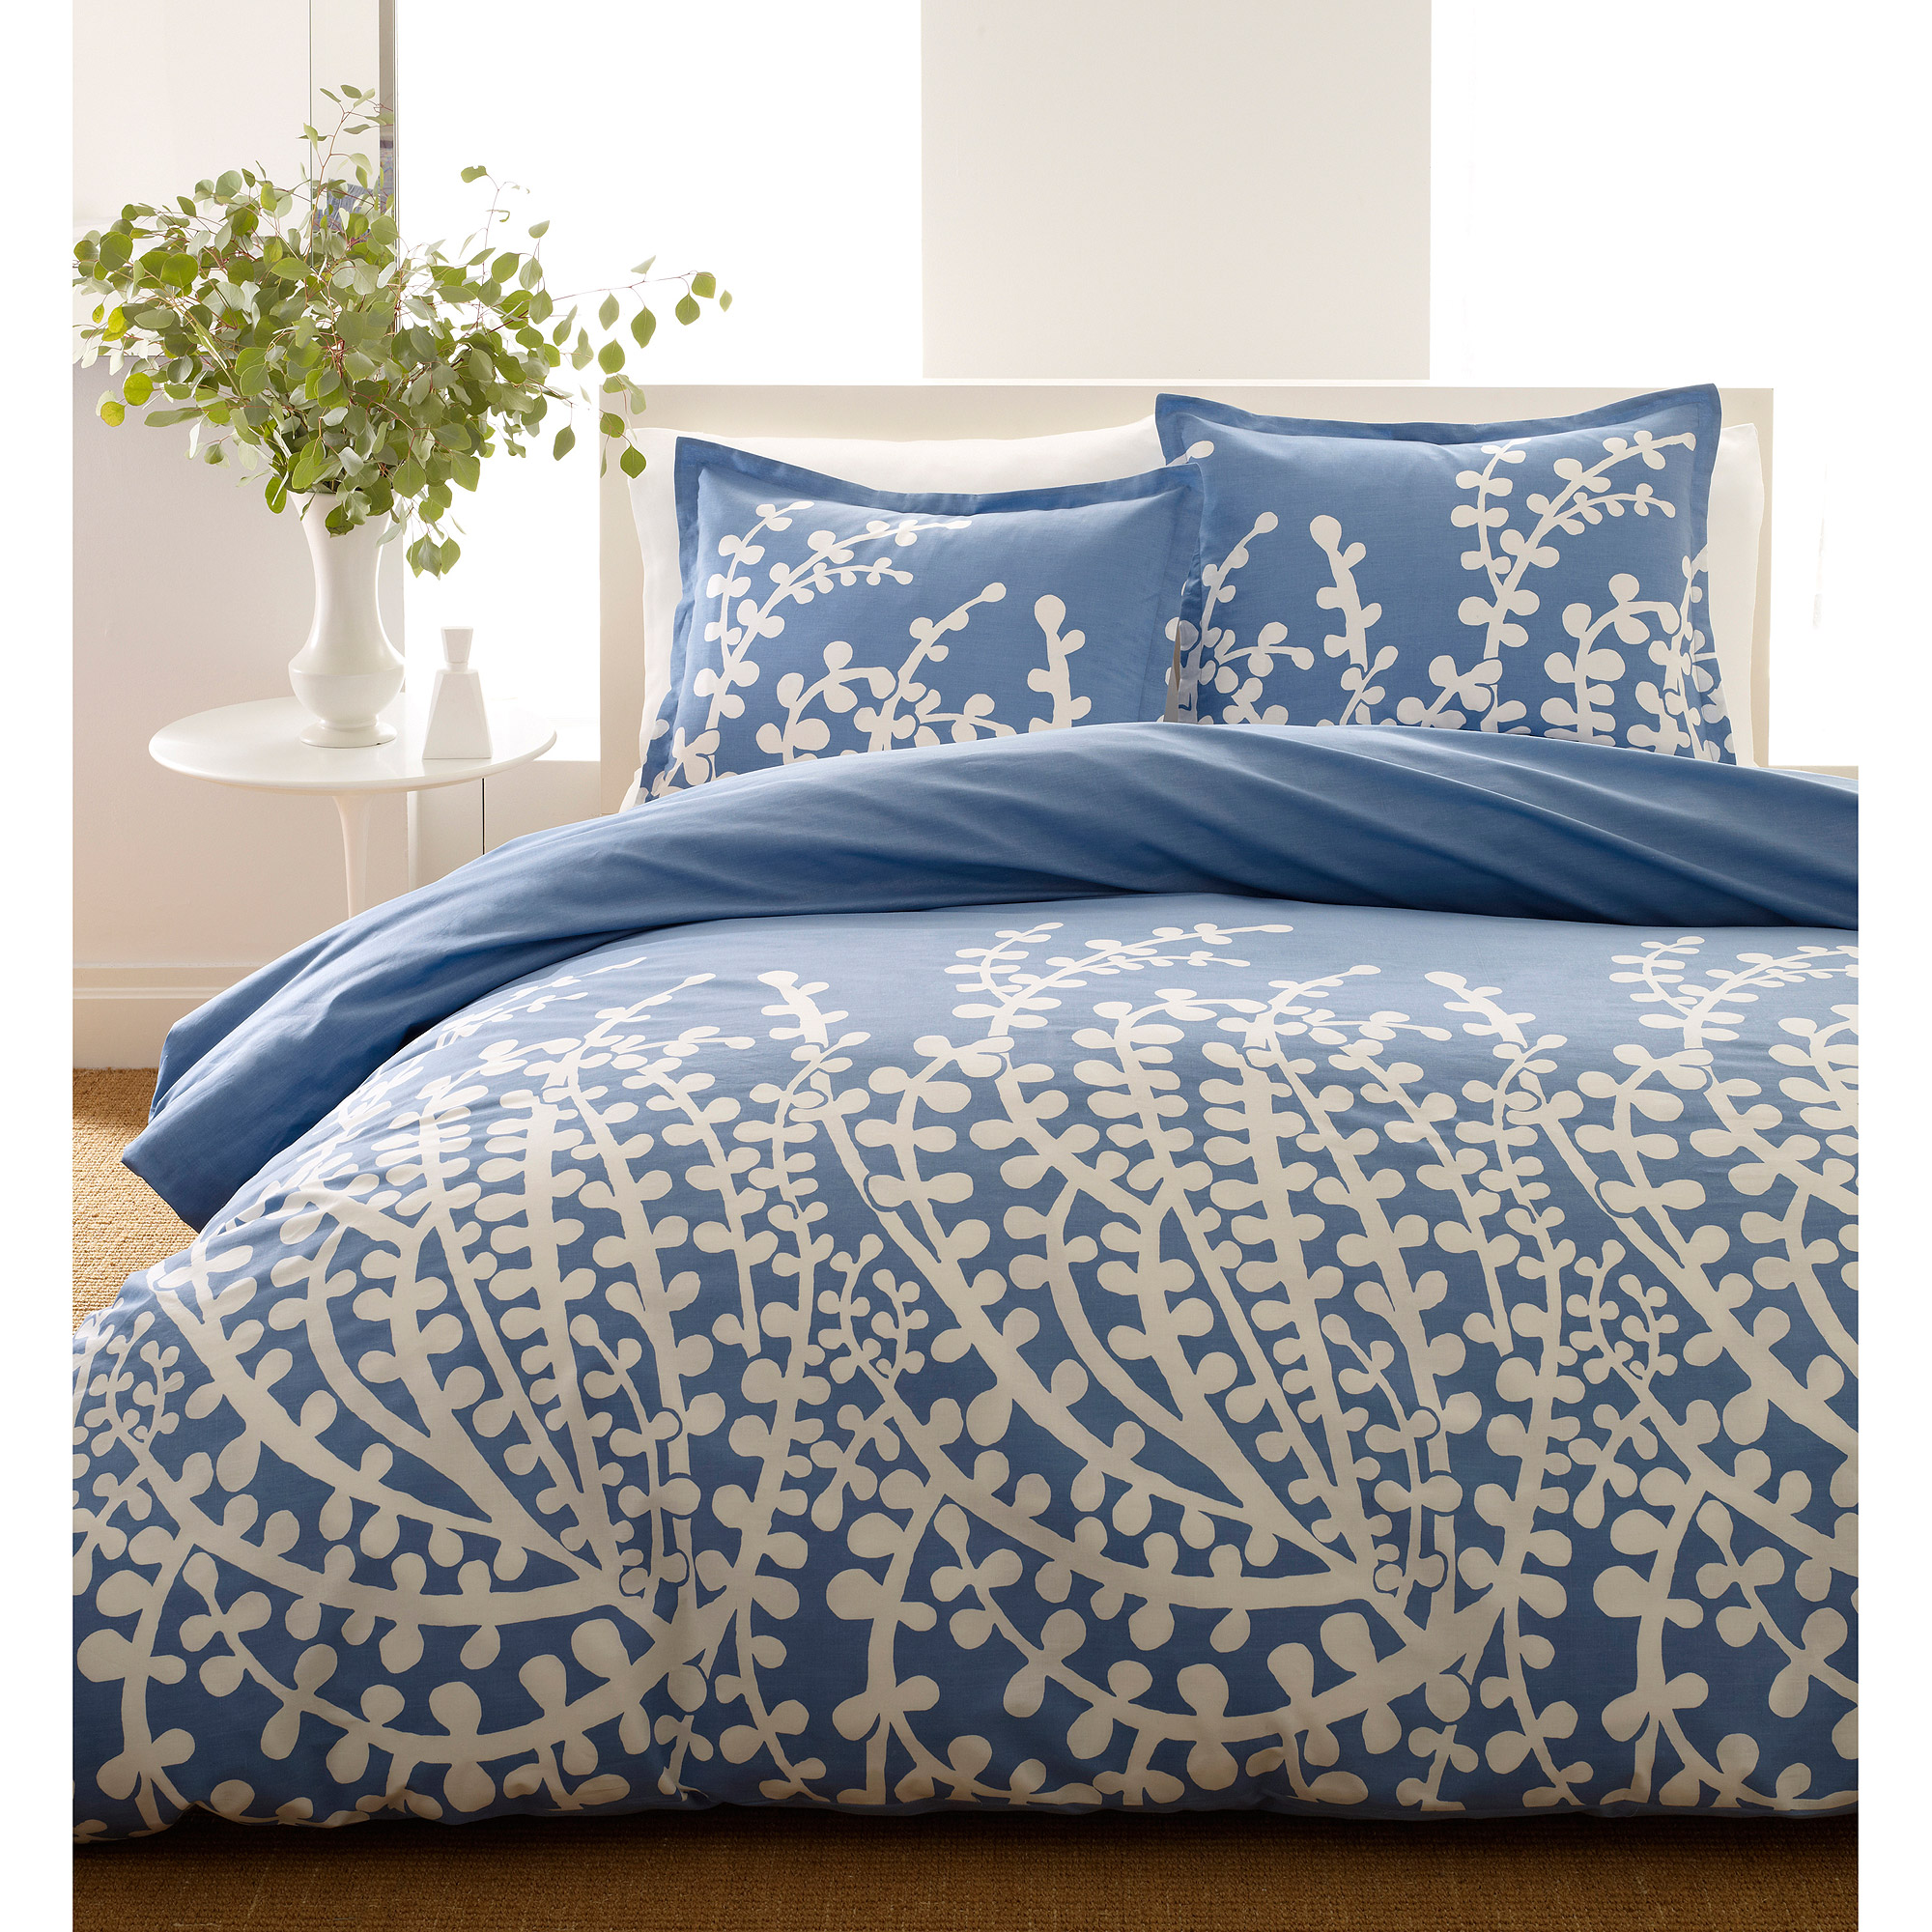 City Scene Branches Mini Bedding Comforter Set